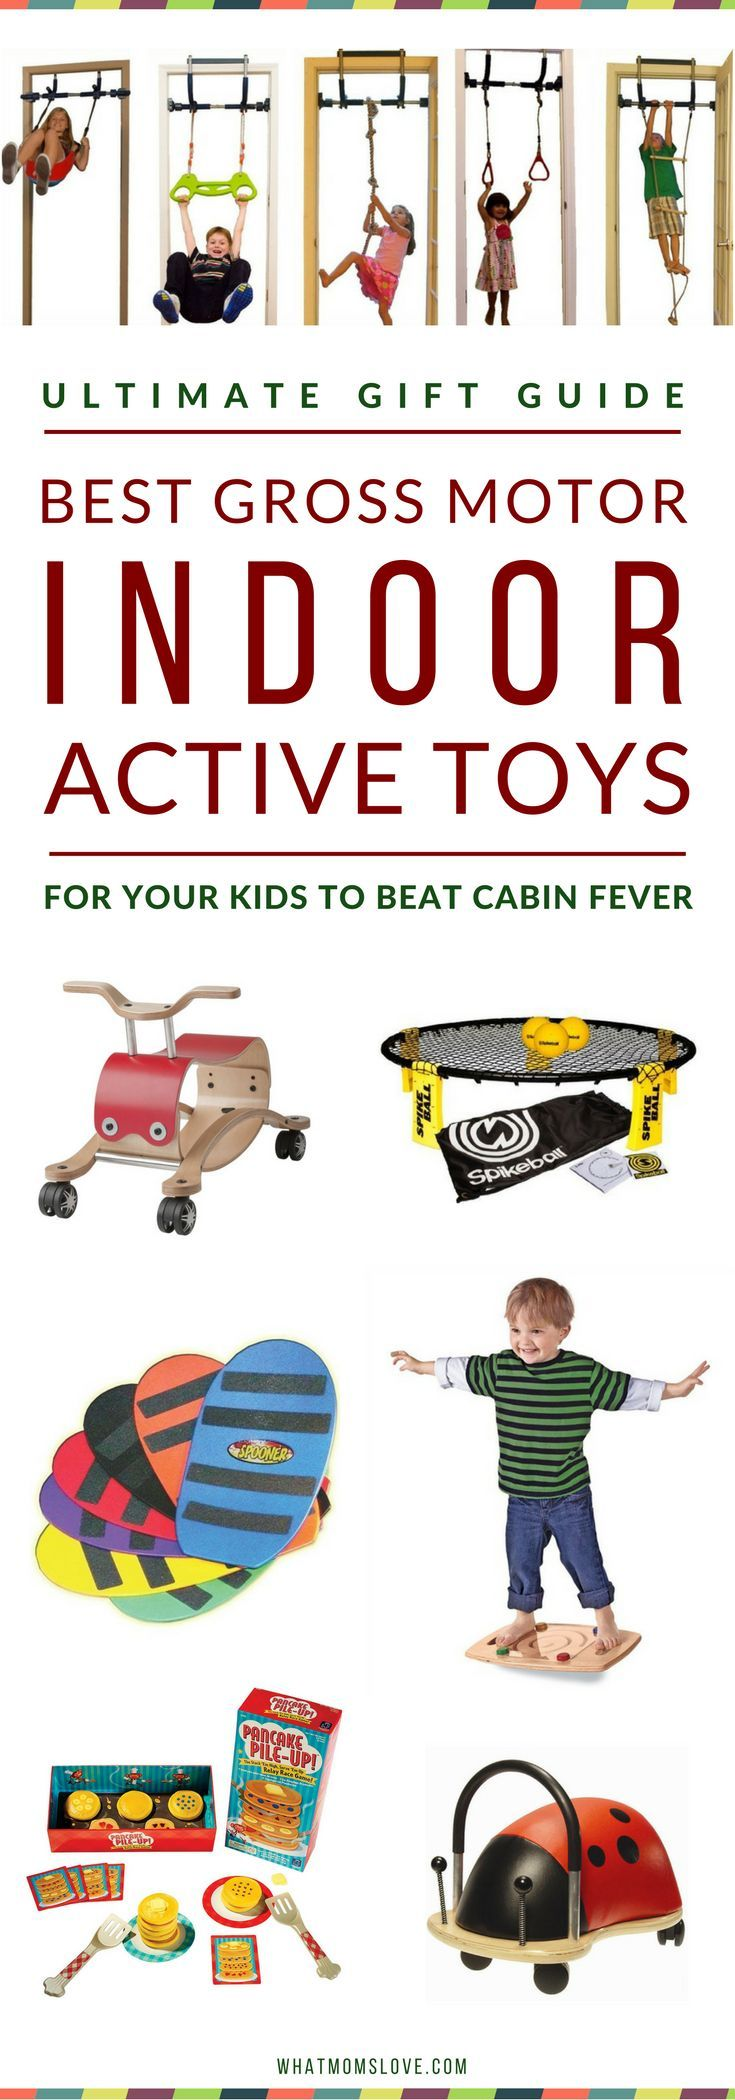 Rainy / Snowy Day Indoor Activities To Get Kids Moving!   Best Toys For Active Indoor Play & Gross Motor Development   Fun Boredom Busters For Kids